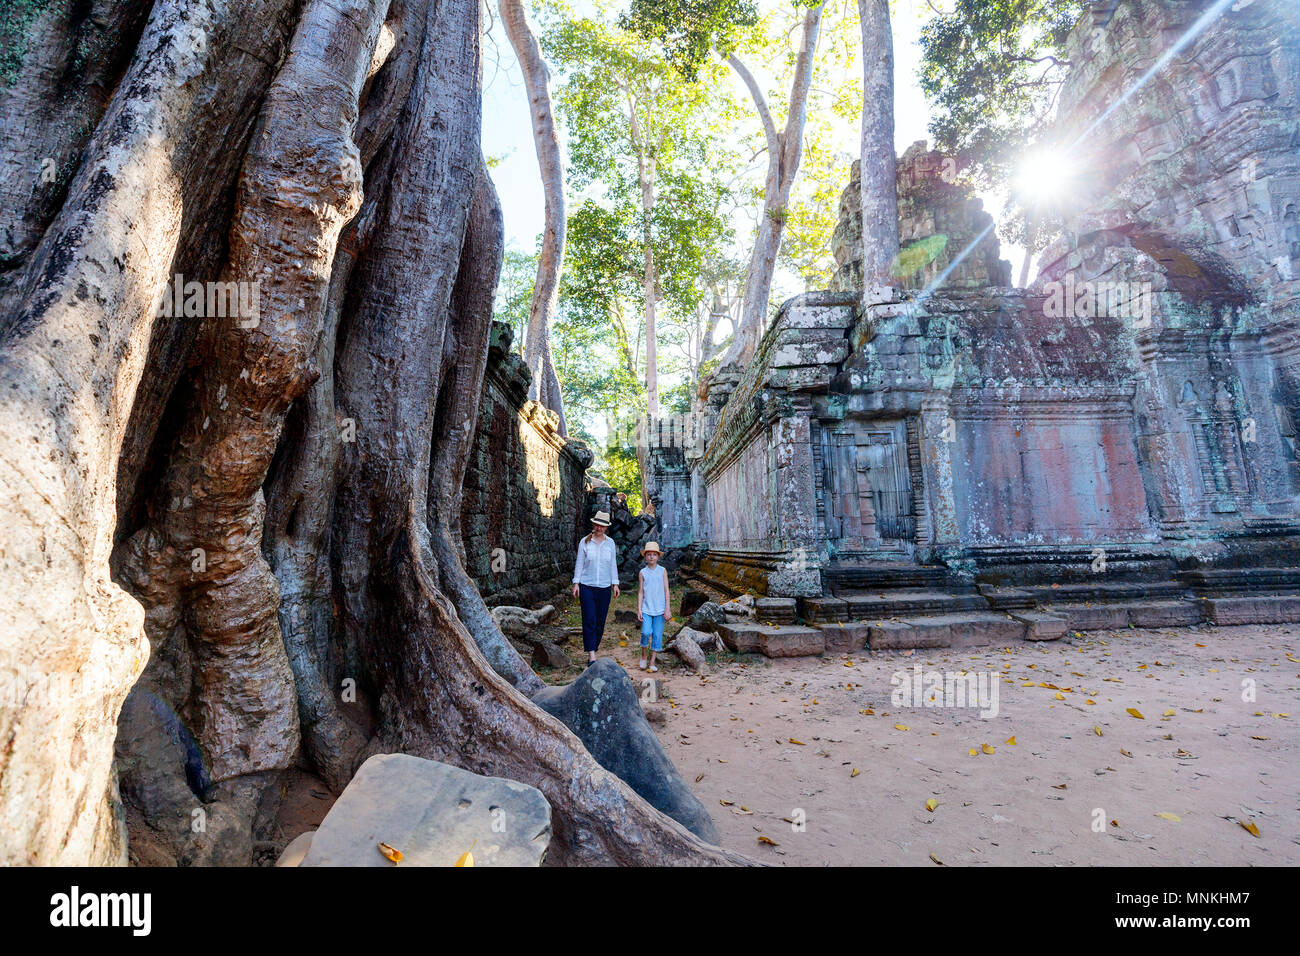 Family visiting ancient Ta Prohm temple in Angkor Archaeological area in Cambodia Stock Photo